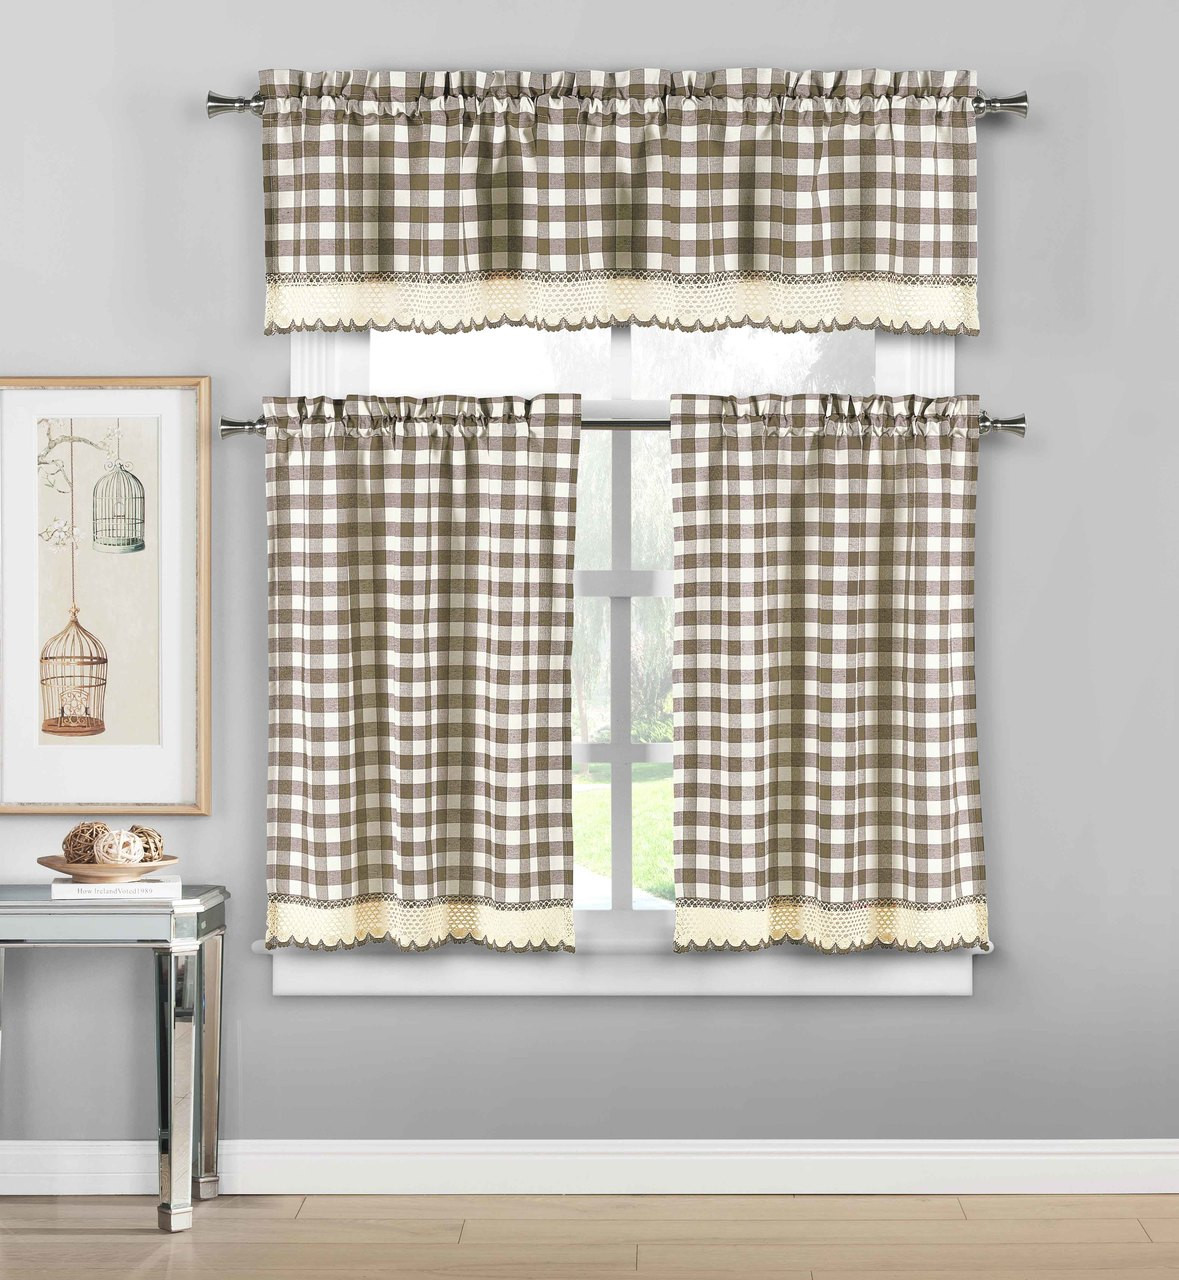 3 Piece Plaid Checkered Gingham Kitchen Curtain Set 35 Cotton 1 Valance 2 Tier Panels With Crochet Accent Taupe